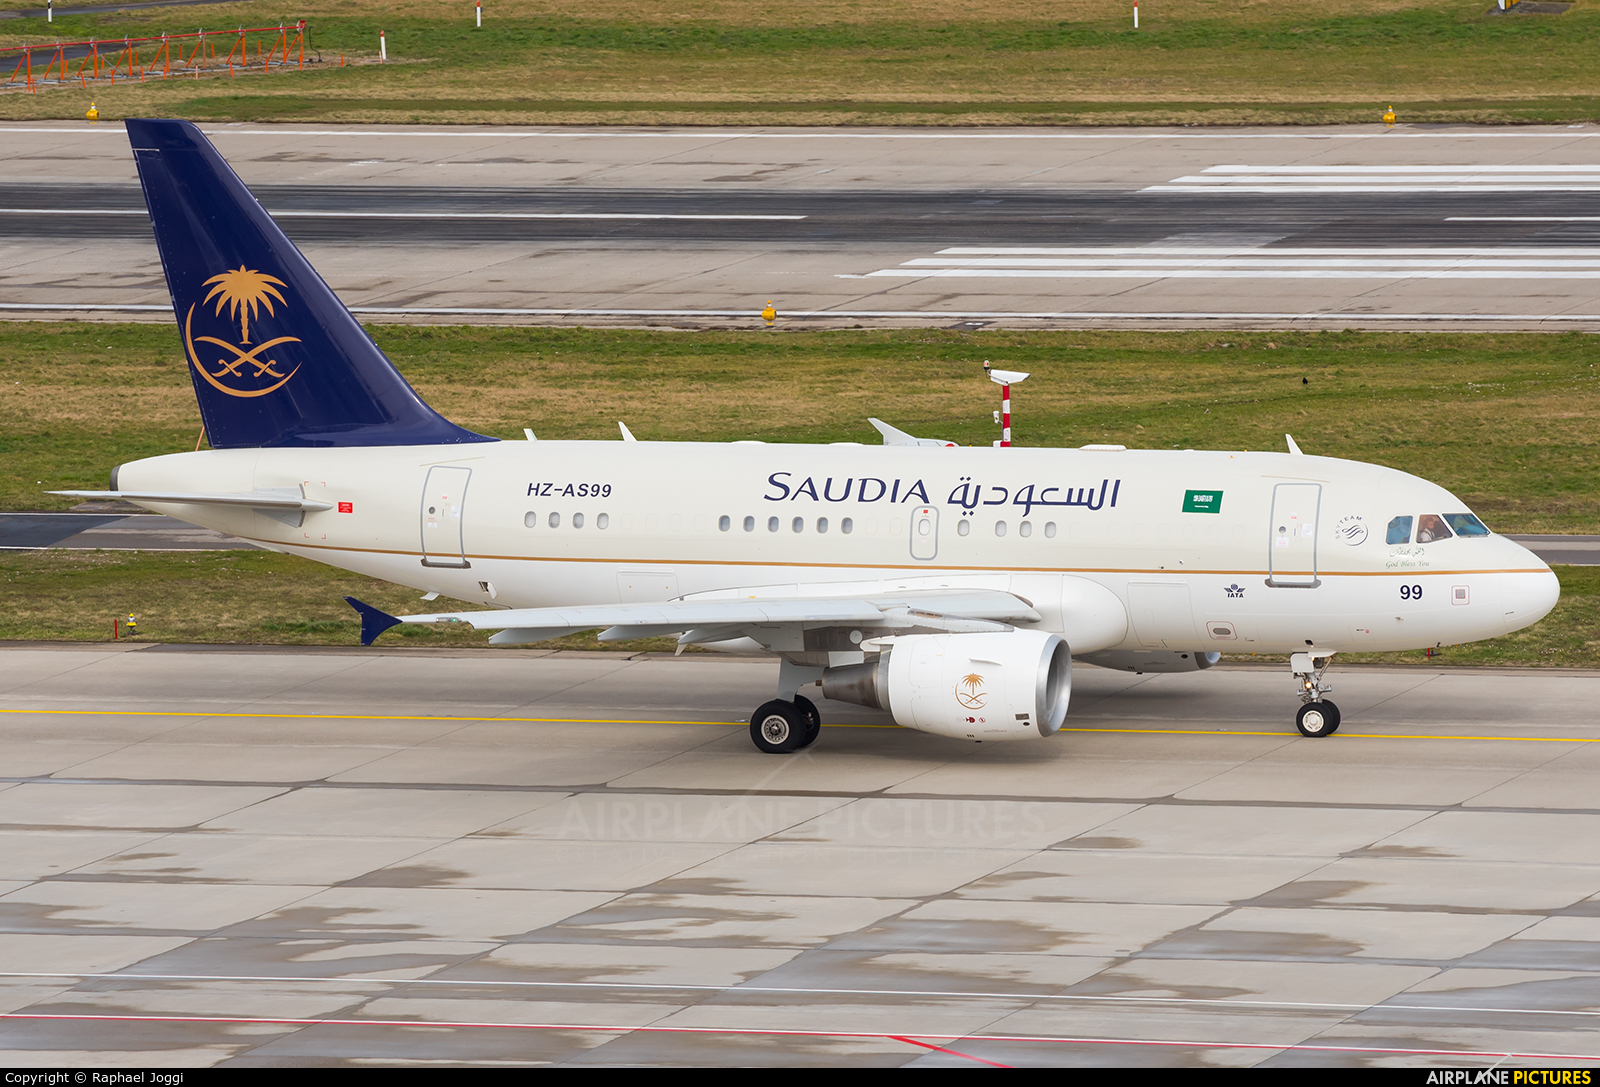 Saudi Arabia - Royal Flight HZ-AS99 aircraft at Zurich